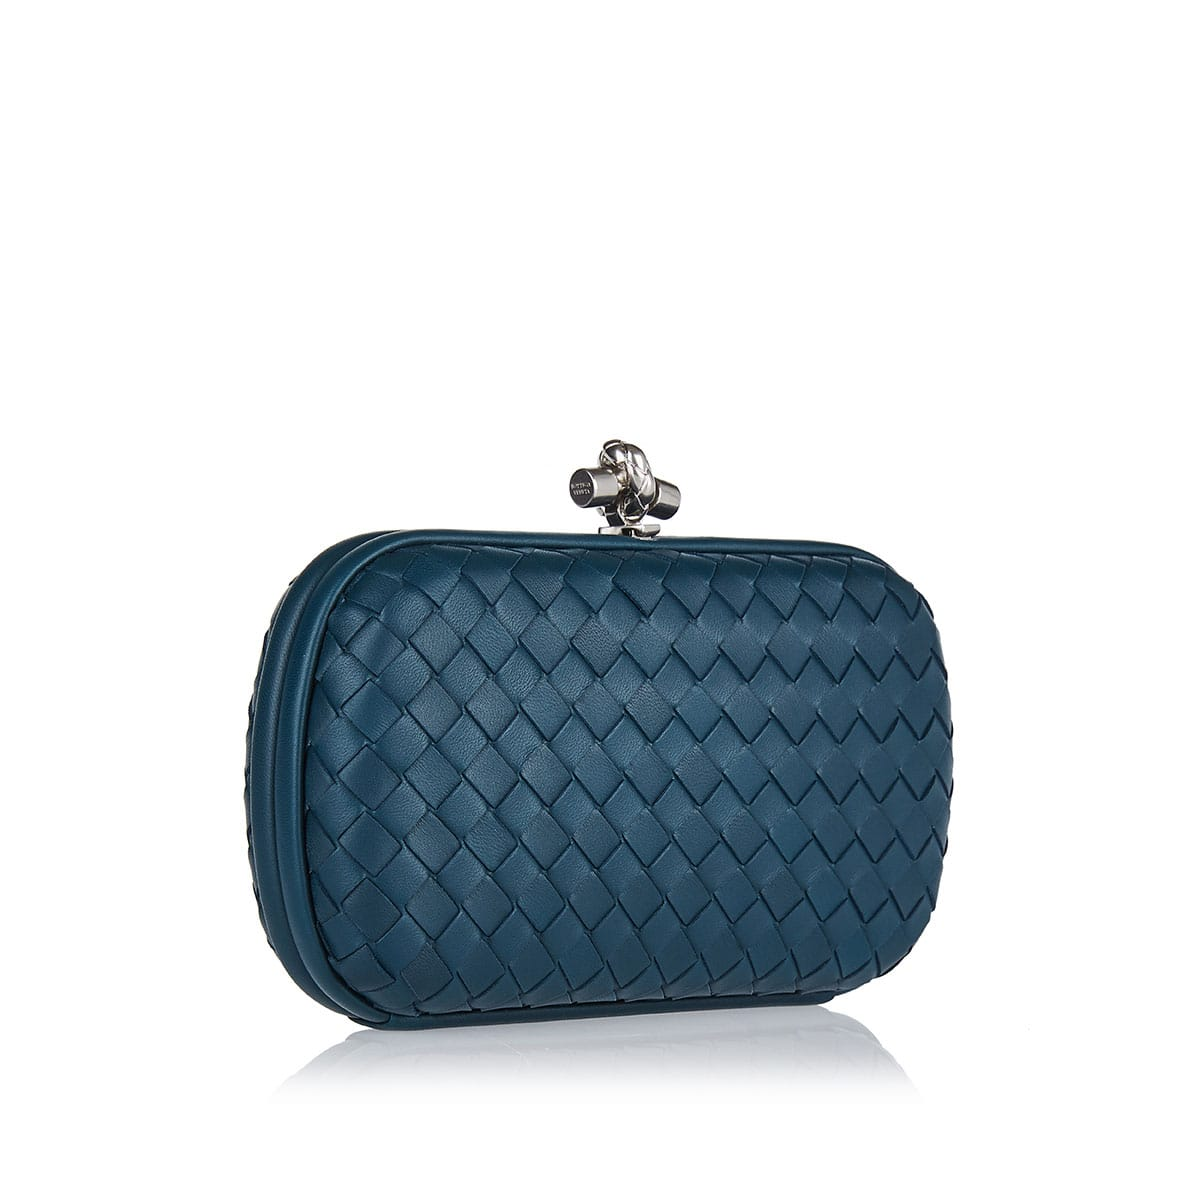 Intrecciato leather chain knot clutch